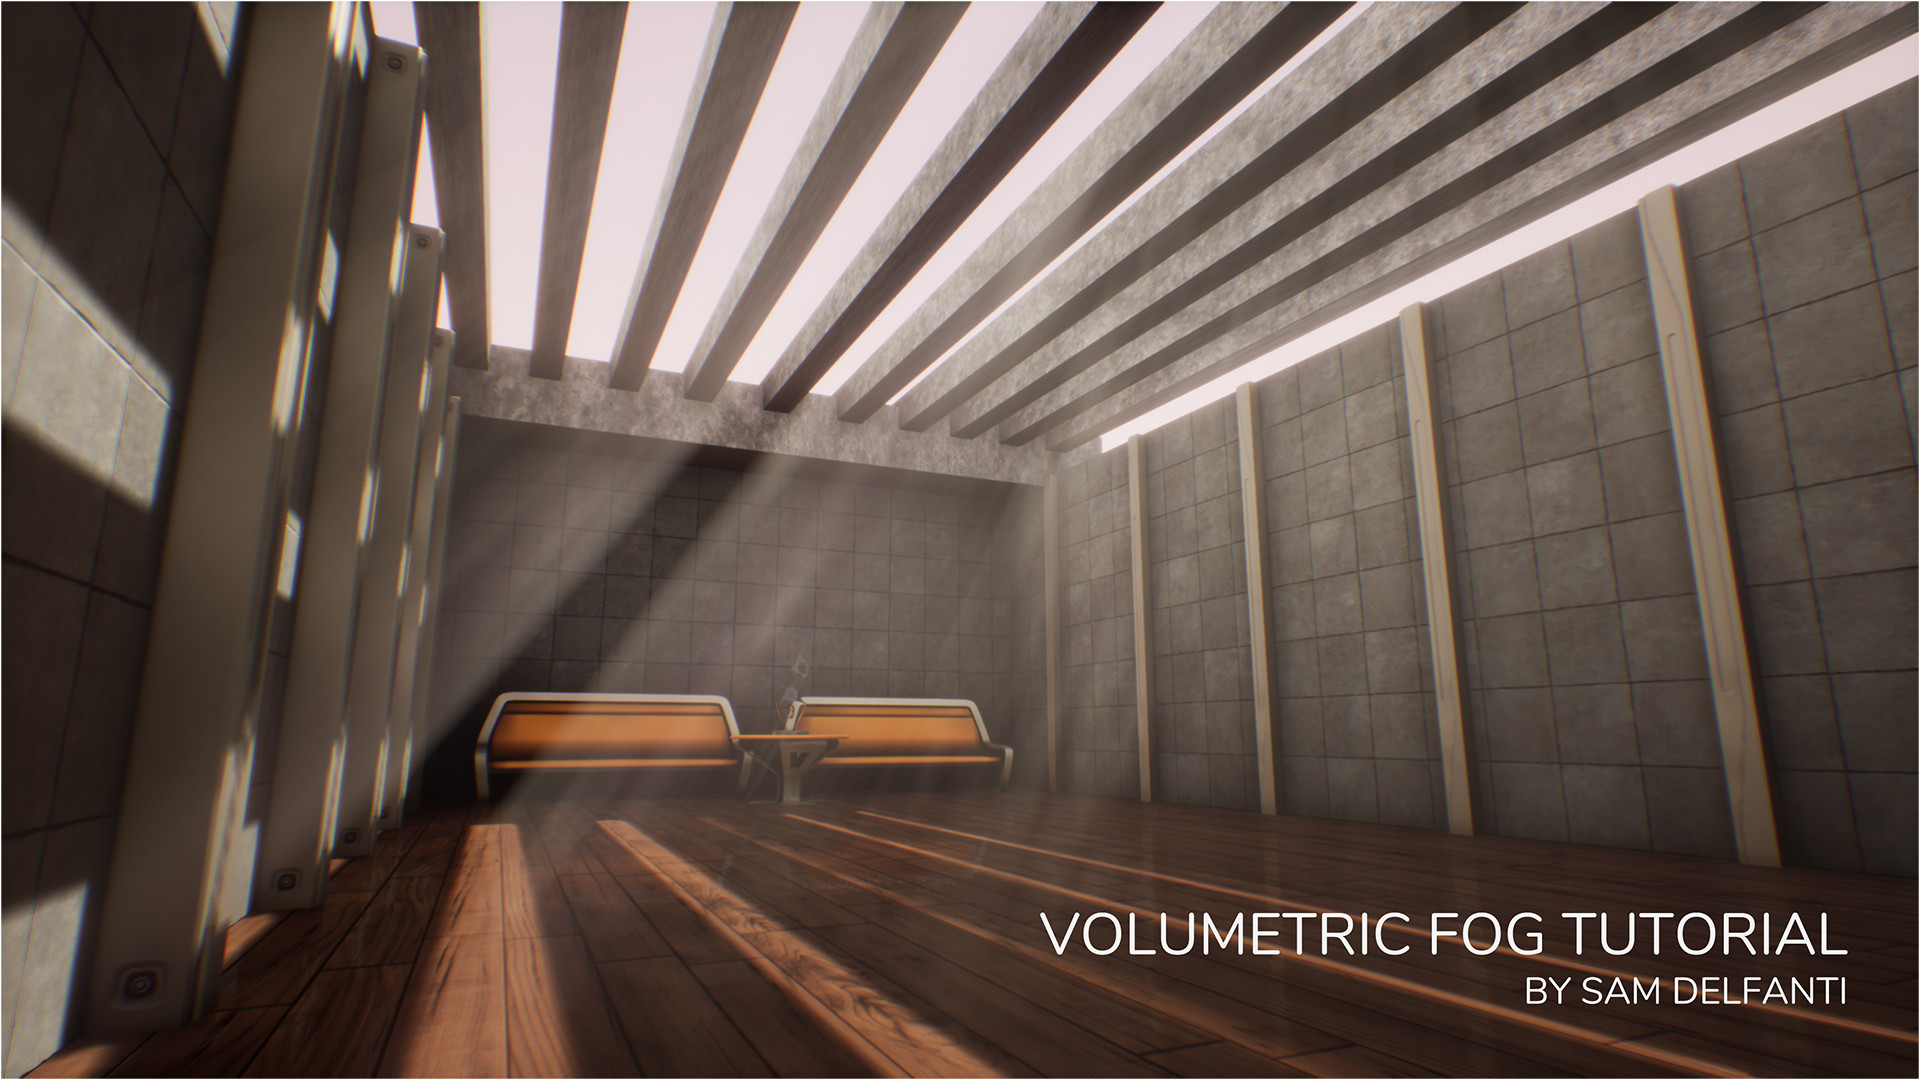 Artstation Unreal Engine 4 Tutorial Easy Volumetric Fog And Light Shafts Sam Delfanti